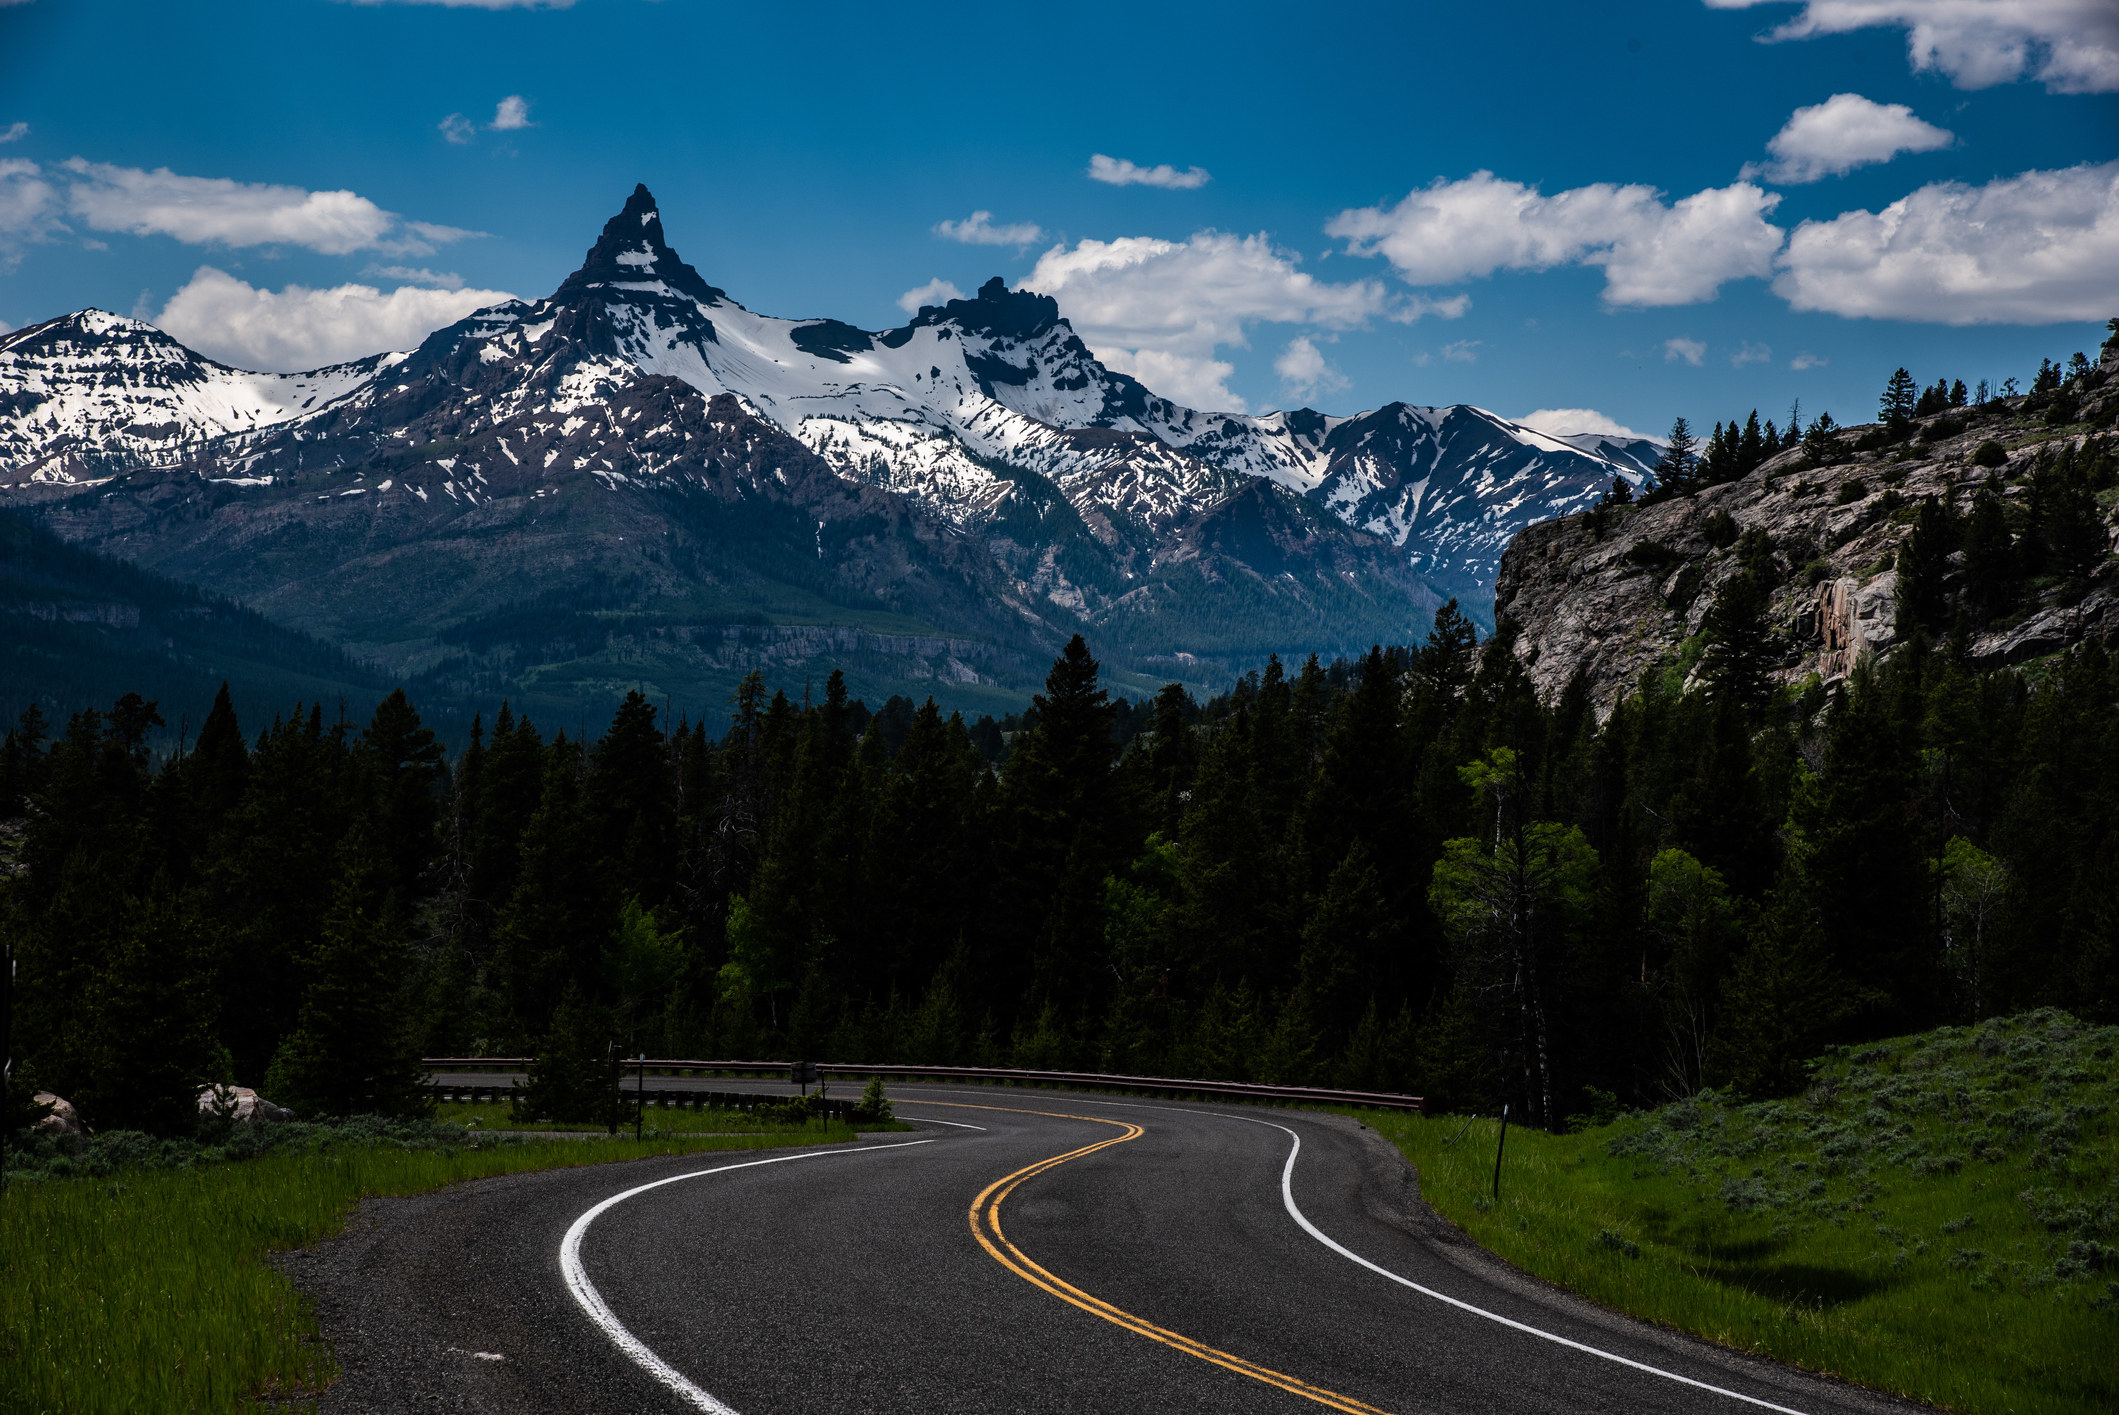 The Beartooth highway winding around a bend with snow capped mountains in the distance